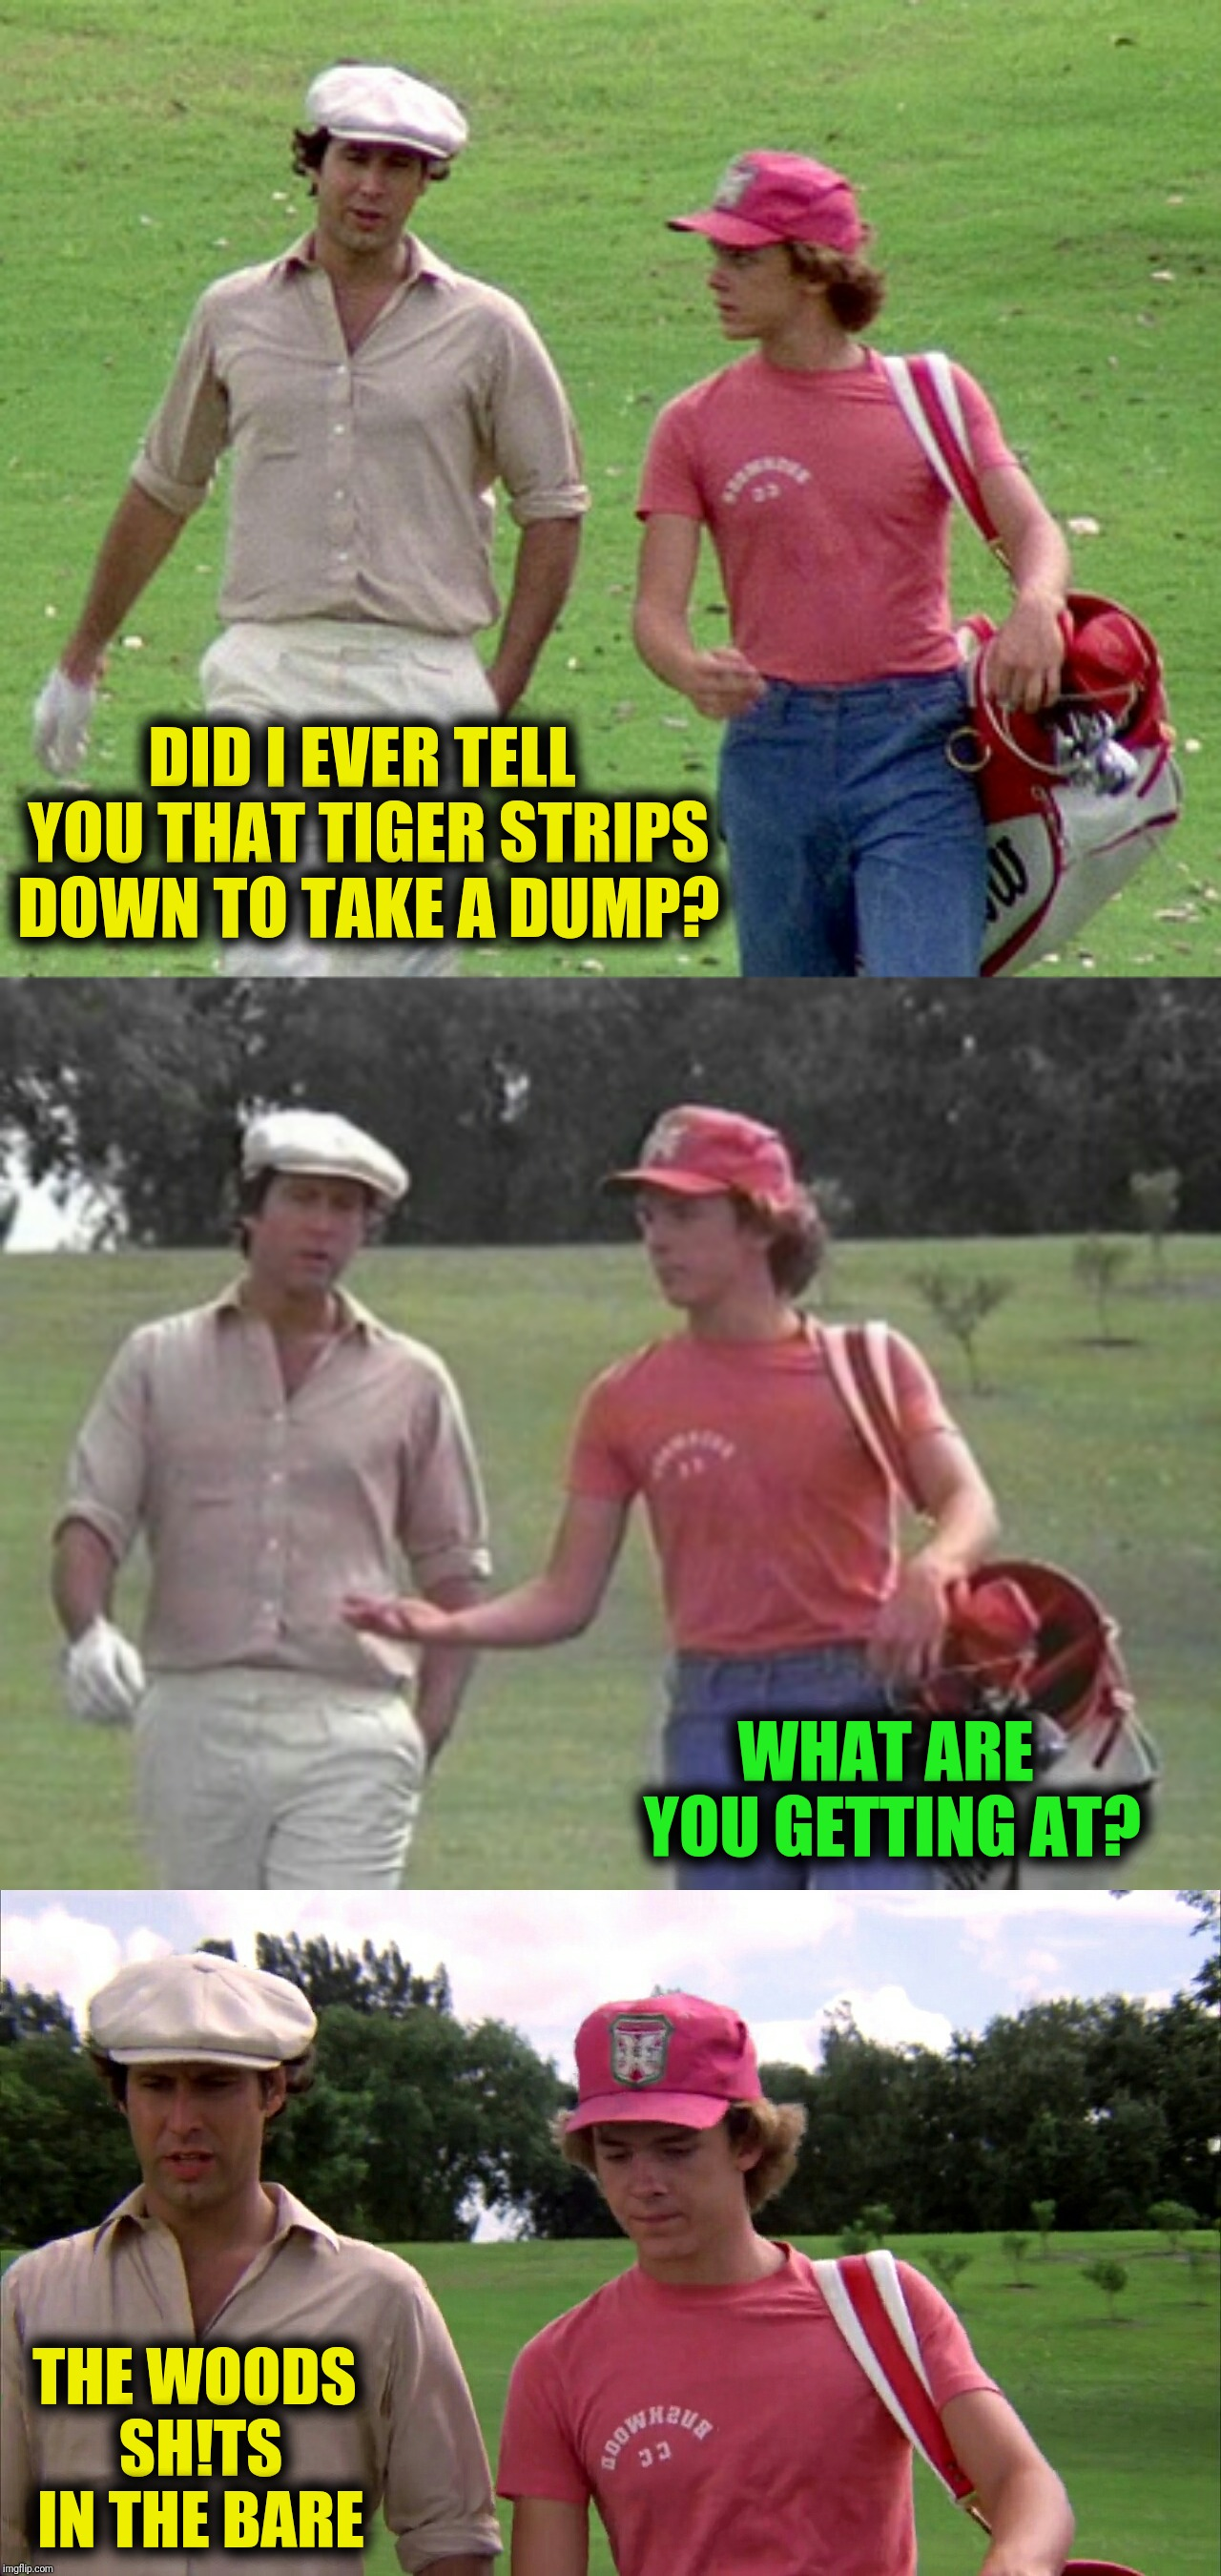 Bad Photoshop Sunday takes a rest to acknowledge Tiger Woods | THIS IS SATAN, SATAN LIKES TO SPOIL THINGS FOR HARDWORKING PEOPLE WHO CAN'T STAY UP LATE! DON'T BE LIKE SATANDON'T POST STUFF ABOUT G.O.T  | image tagged in not bad photoshop sunday,caddyshack,tiger woods,masters | made w/ Imgflip meme maker